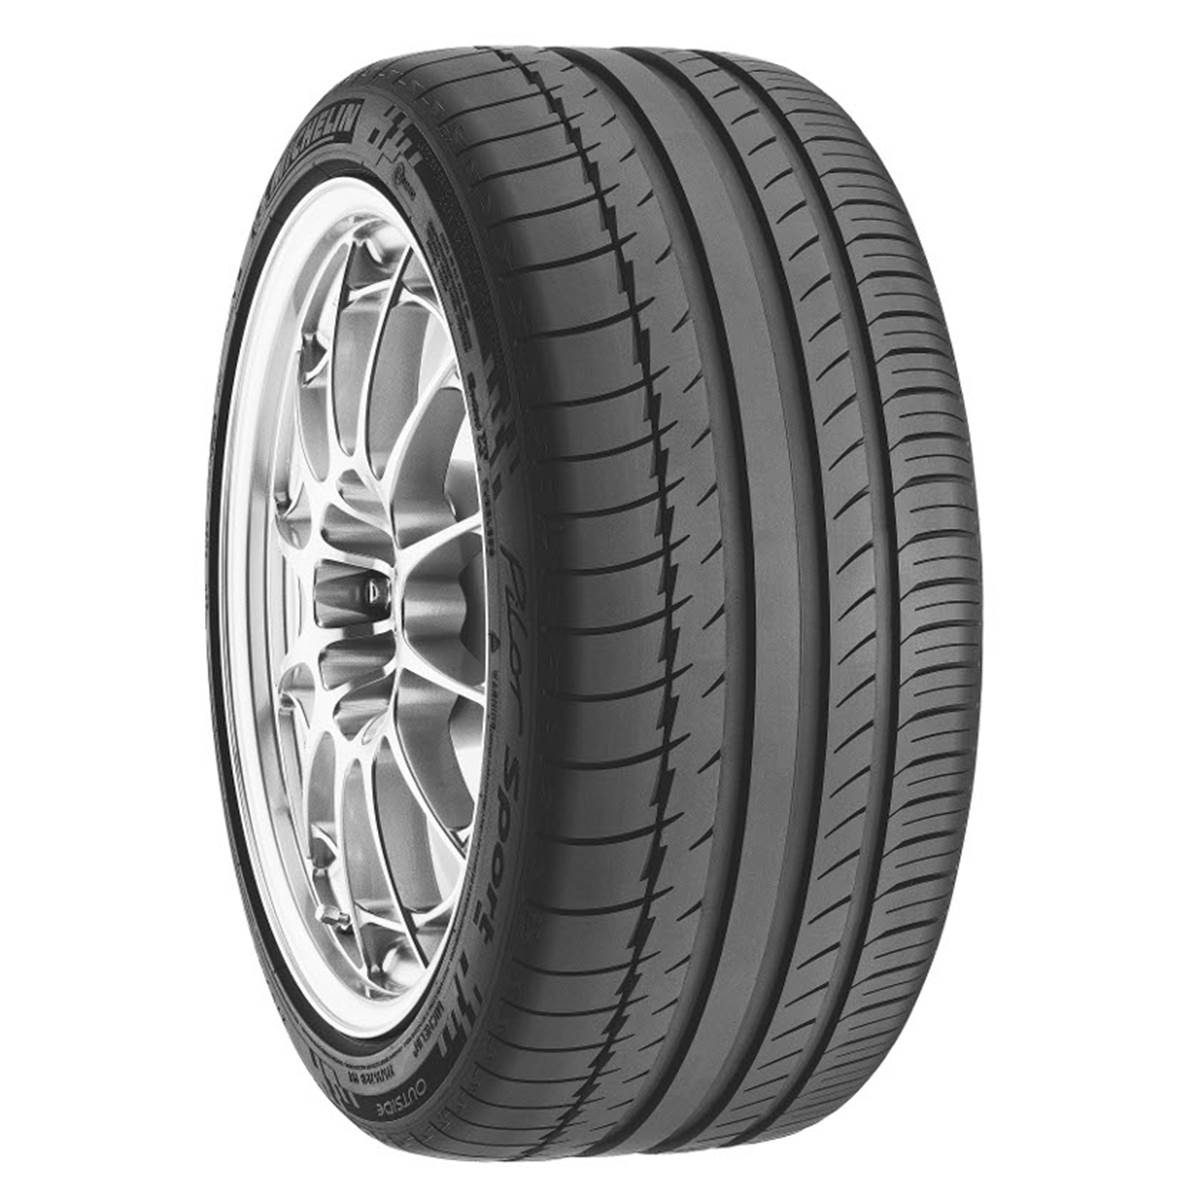 Pneu Michelin 315/30R18 98Y Pilot Sport Ps2 XL